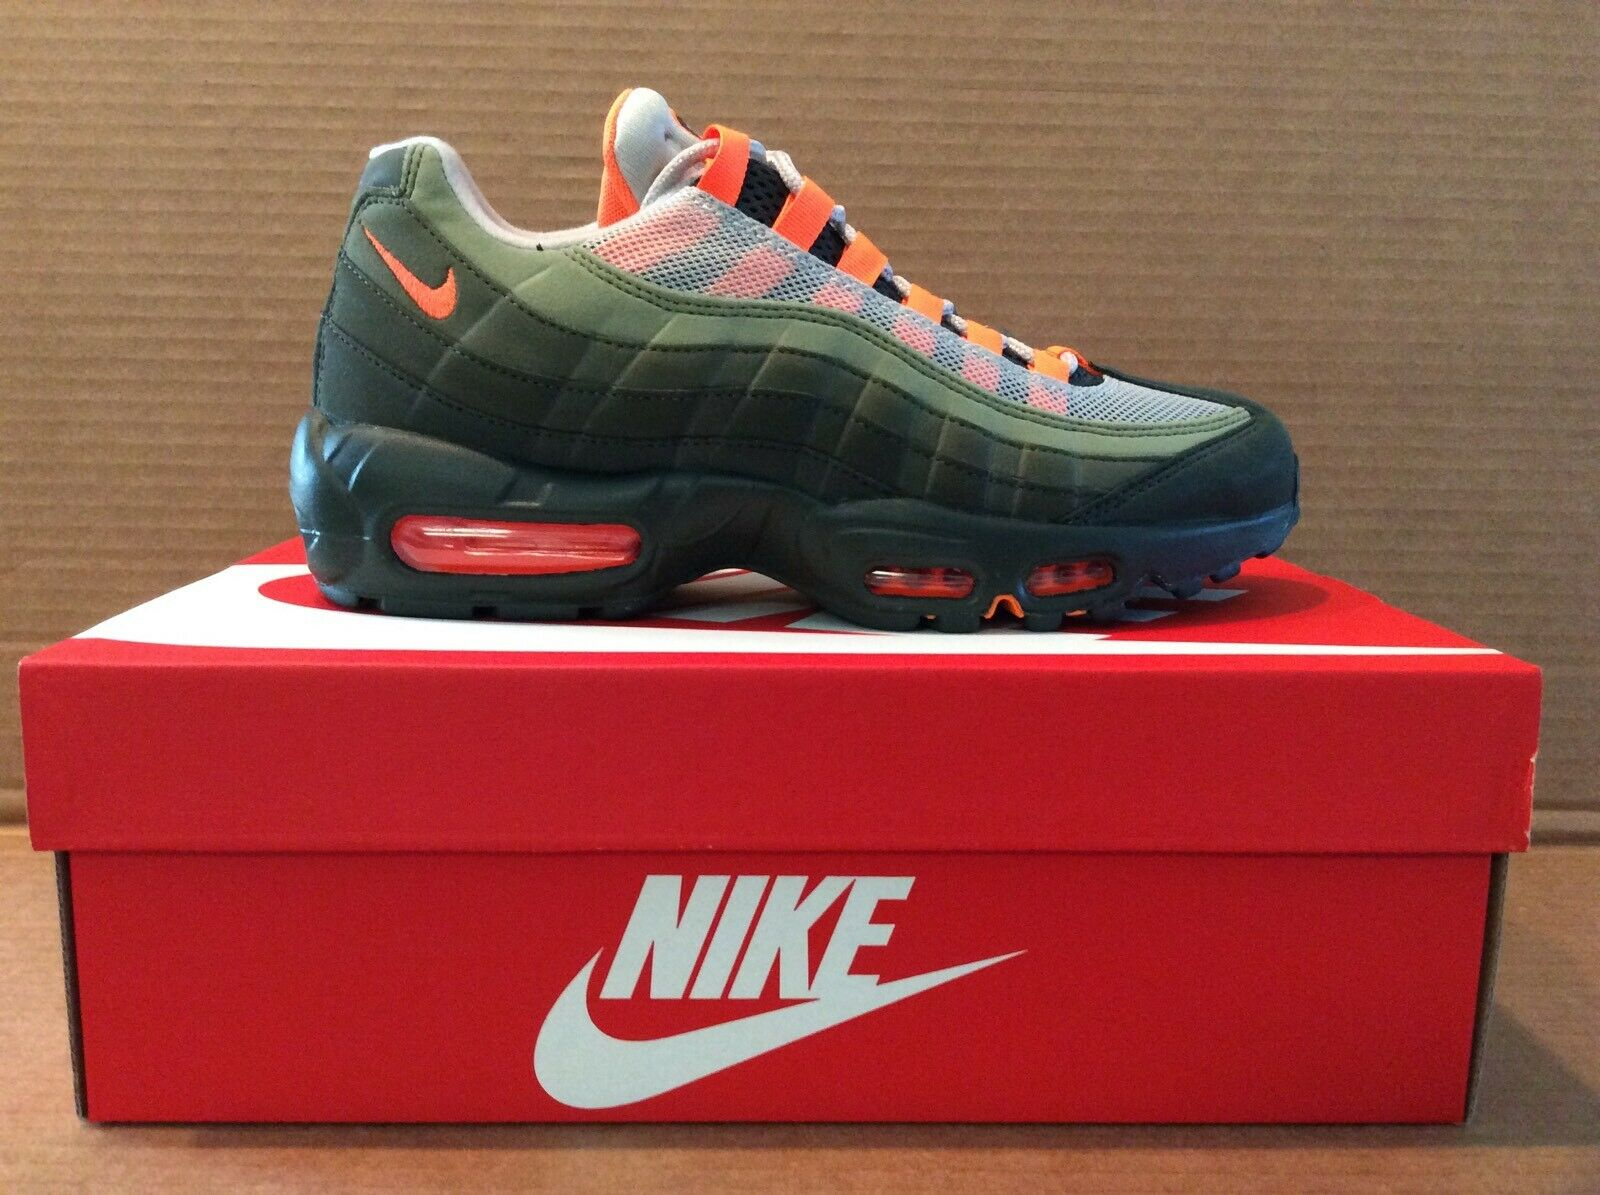 Schuhe NIKE Air Max 95 Prm 538416 201 Neutral Olive